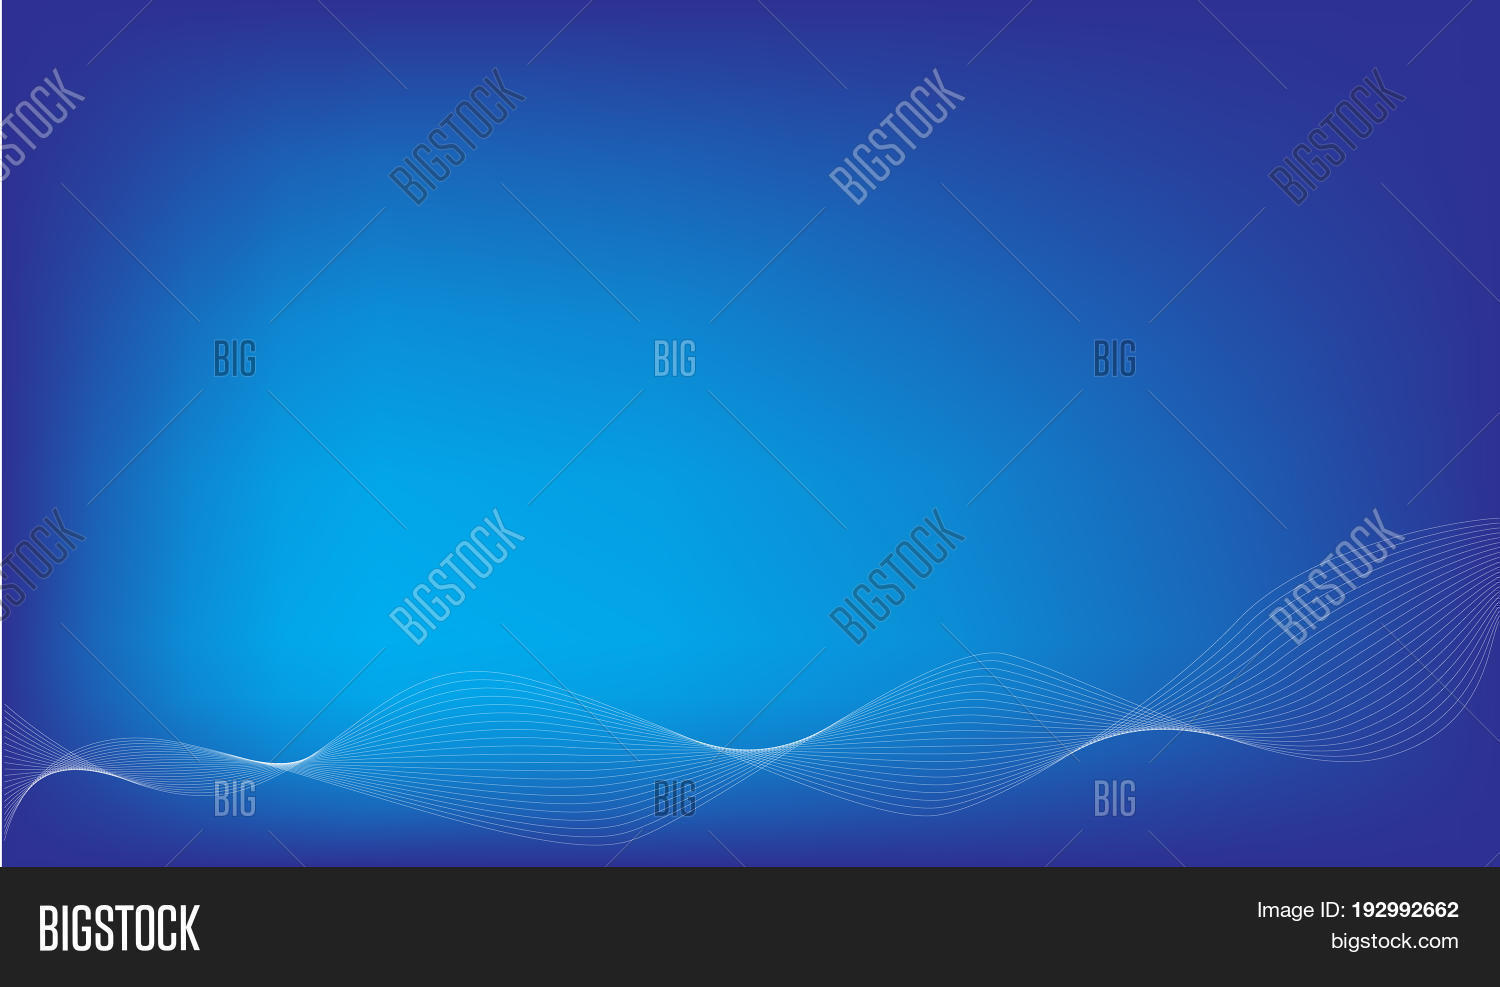 10,abstarct,abstract,art,artistic,backdrop,background,banner,blue,bright,camera,color,colored,computer,concept,conceptual,contemporary,cool,copy,corporate,design,diwali,effect,element,flowing,futuristic,geometric,gradient,graphic,horizontal,illustration,image,internet,layout,multi,painting,pattern,rainbow,retro,screen,space,spring,technology,texture,textured,transparent,vertical,web